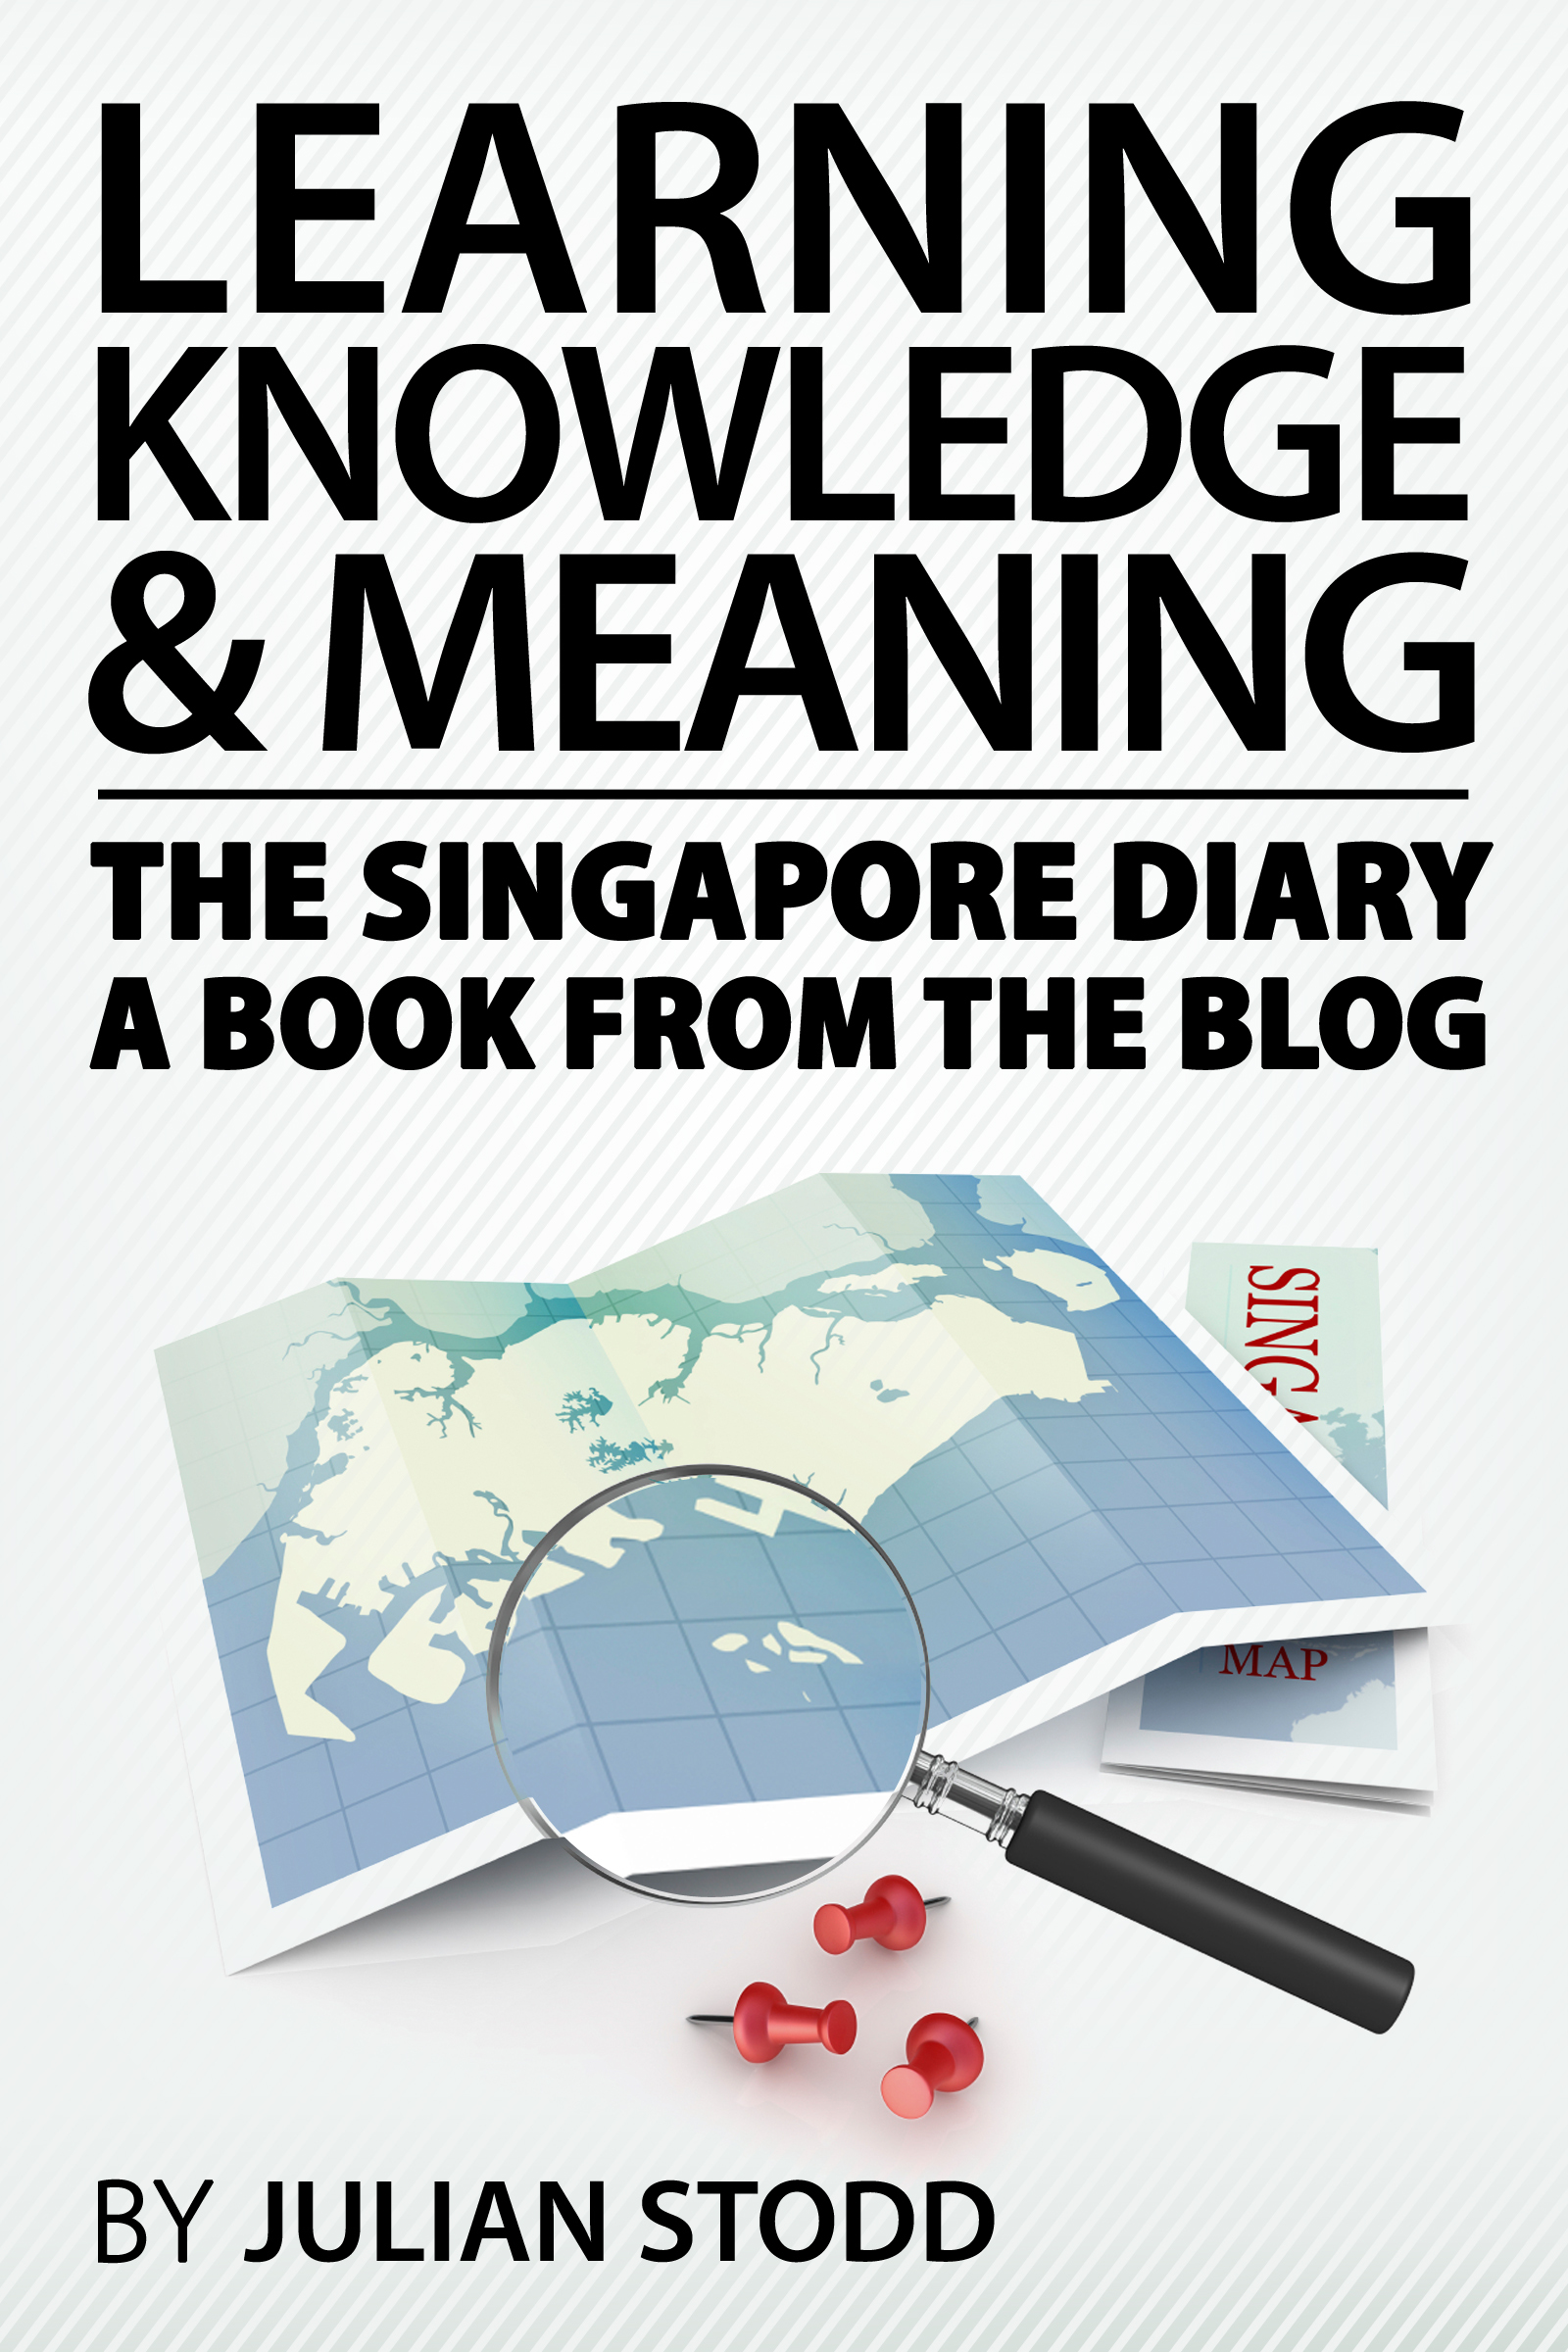 Learning, knowledge and meaning: the Singapore diary - a book from the blog